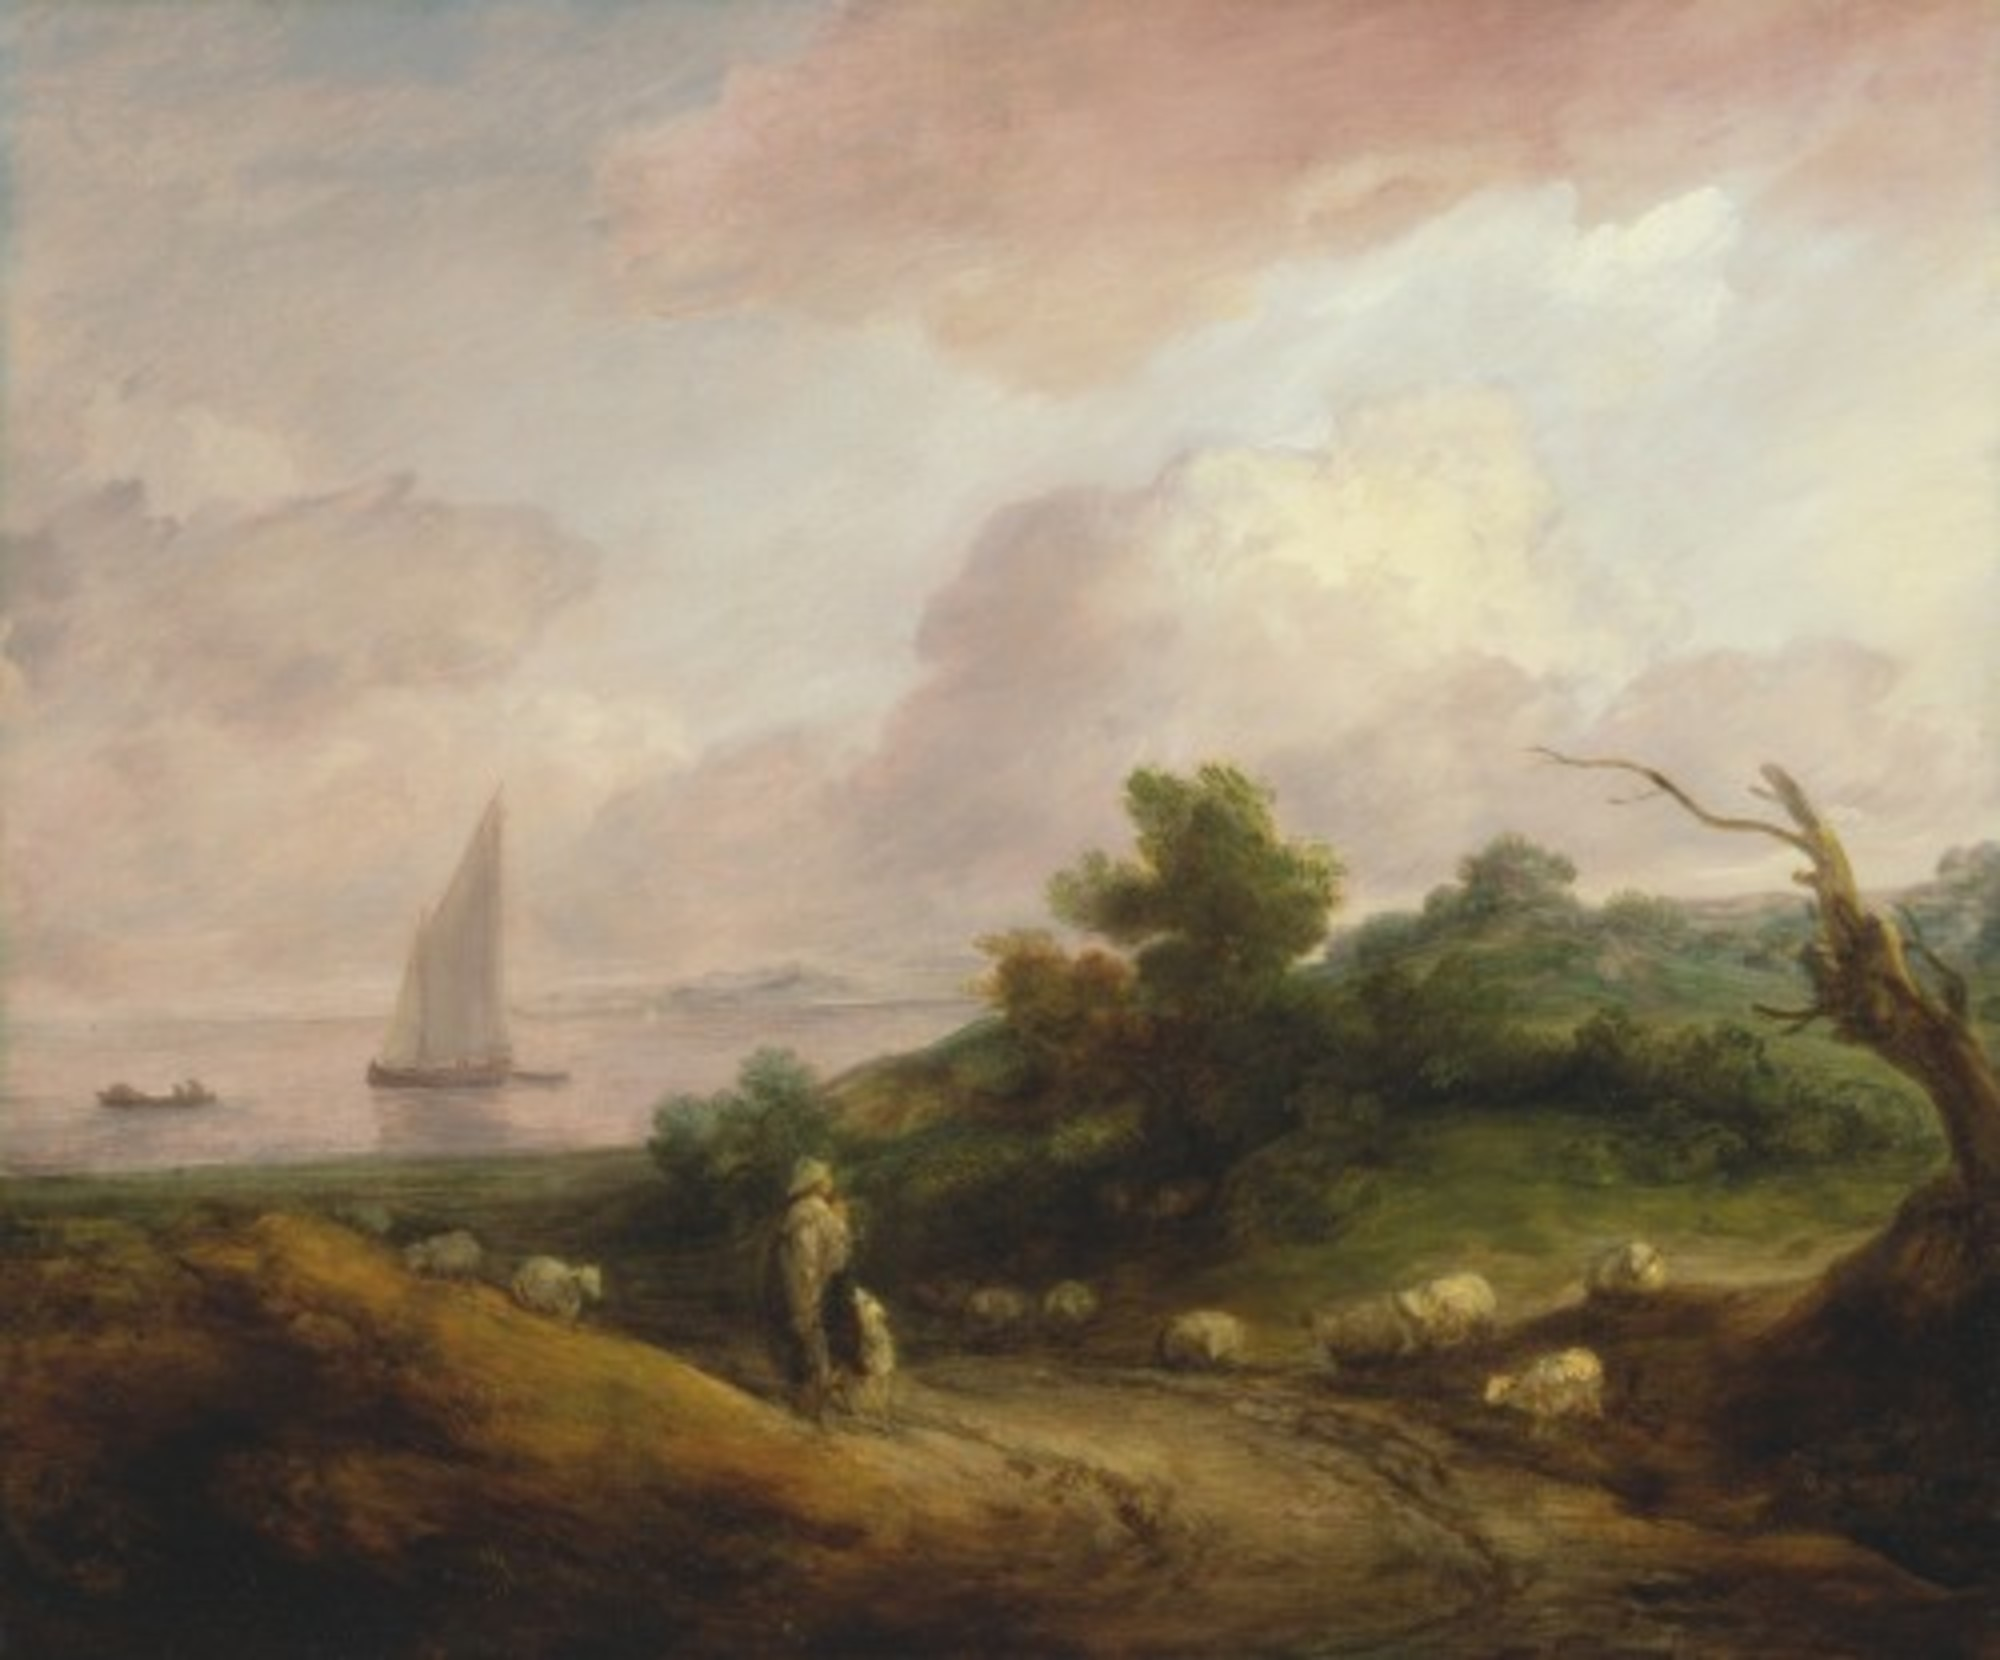 Thomas_Gainsborough_-_Coastal_Landscape_with_a_Shepherd_and_His_Flock_-_Google_Art_Project.jpg